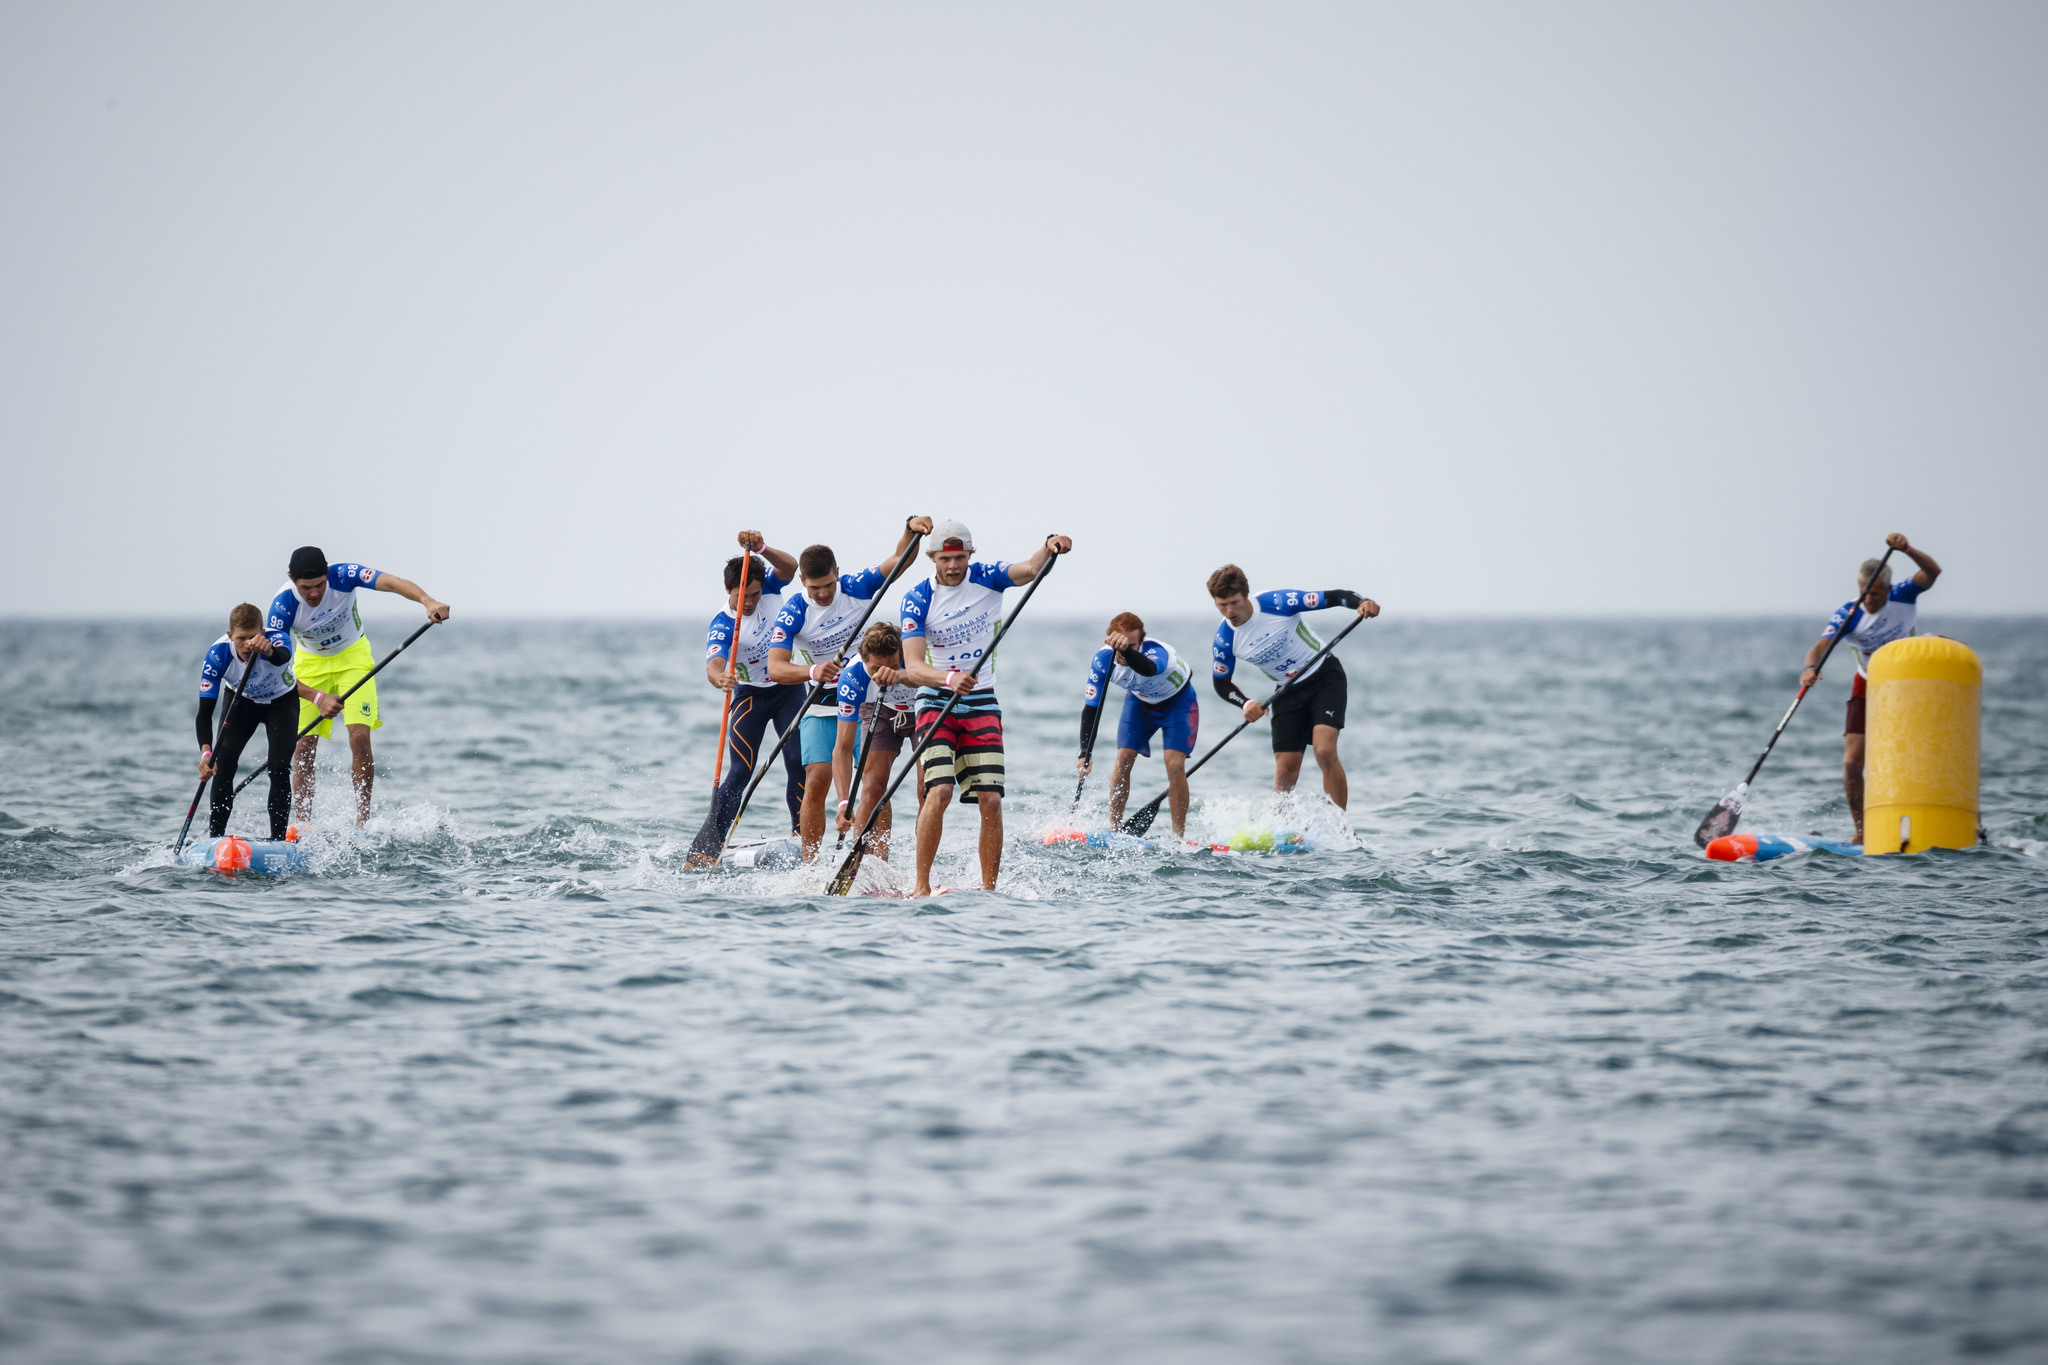 Technical Race - The Technical Race is also called surf-slalom. Typically, the competitors start on the beach (beach start). From here, carrying the board and paddle in their hands,they race to the shore, where they jump on board and paddle out through the surf. The race takes place on an m-shaped course marked with buoys, through which the athletes paddle several times. The athletes end up on the beach, where they run up the beach to cross the finish line. The technical race is an elimination race. The best end up in the final.